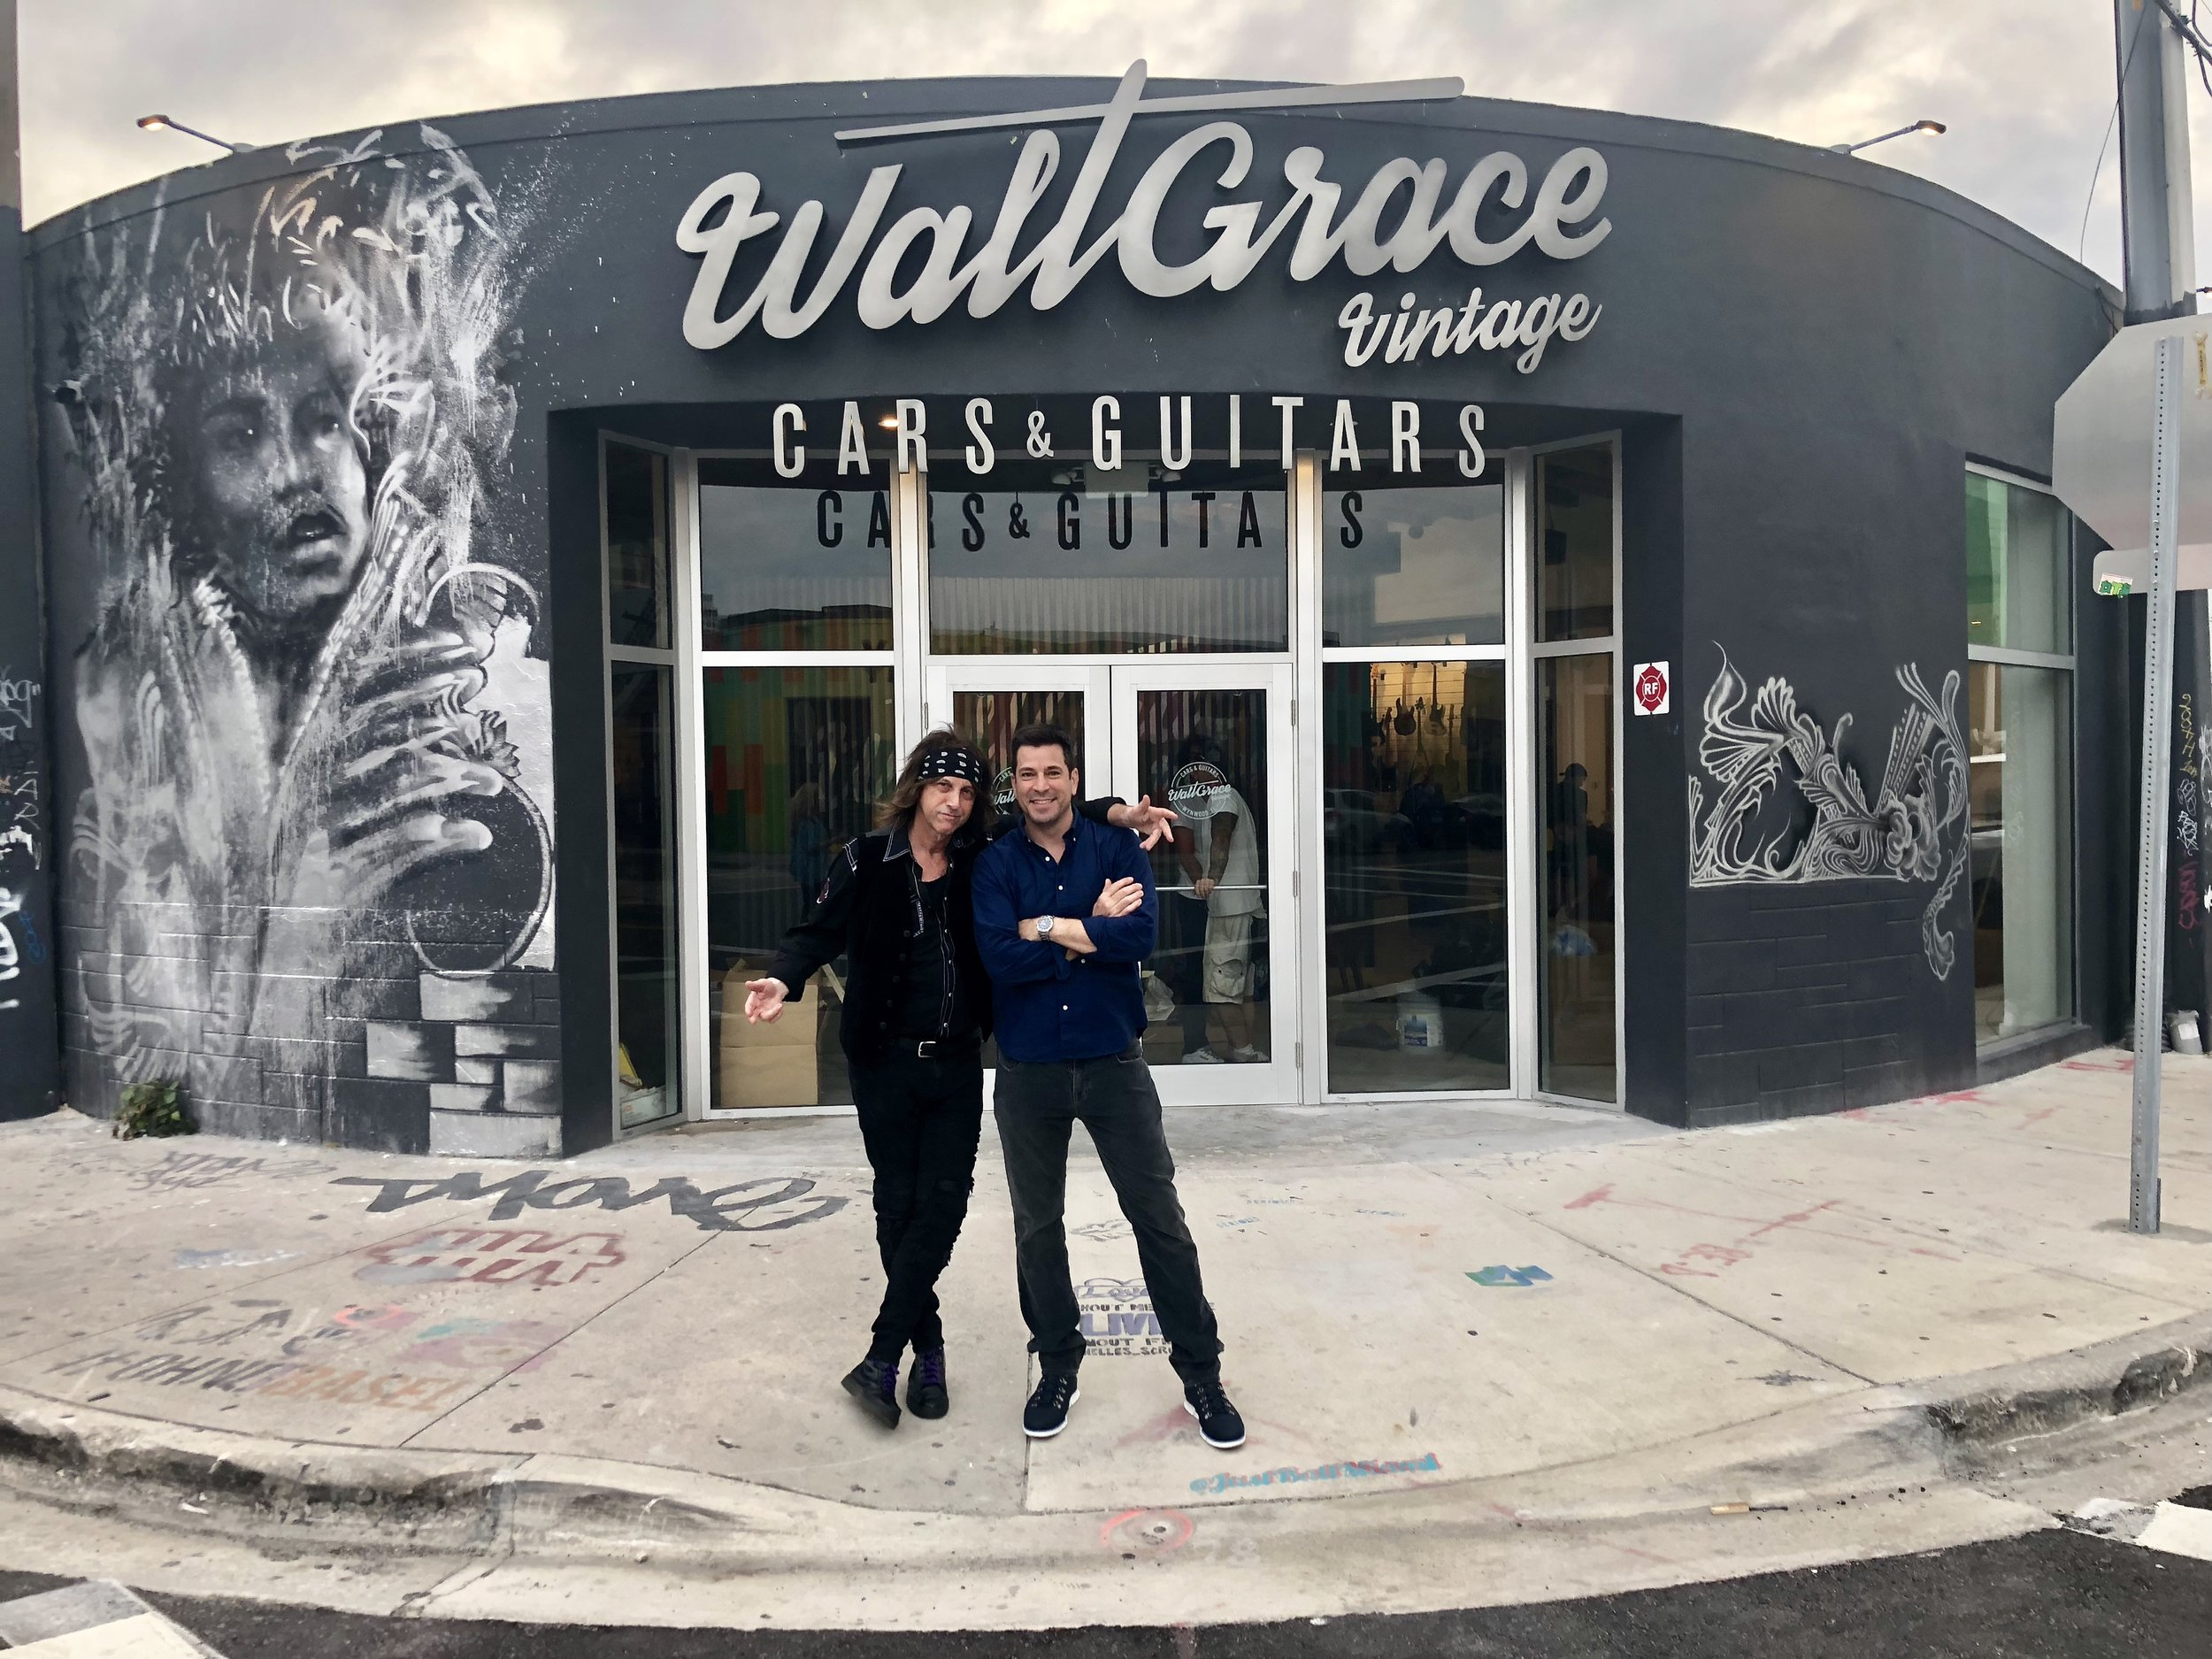 THE ORIGINAL ARTWORK OF WEISSGUY & LACY IS NOW ON DISPLAY IN THE WYNWOOD SECTION OF MIAMI AT WALT GRACE VINTAGE, LOCATED AT 300 NW 26TH STREET.